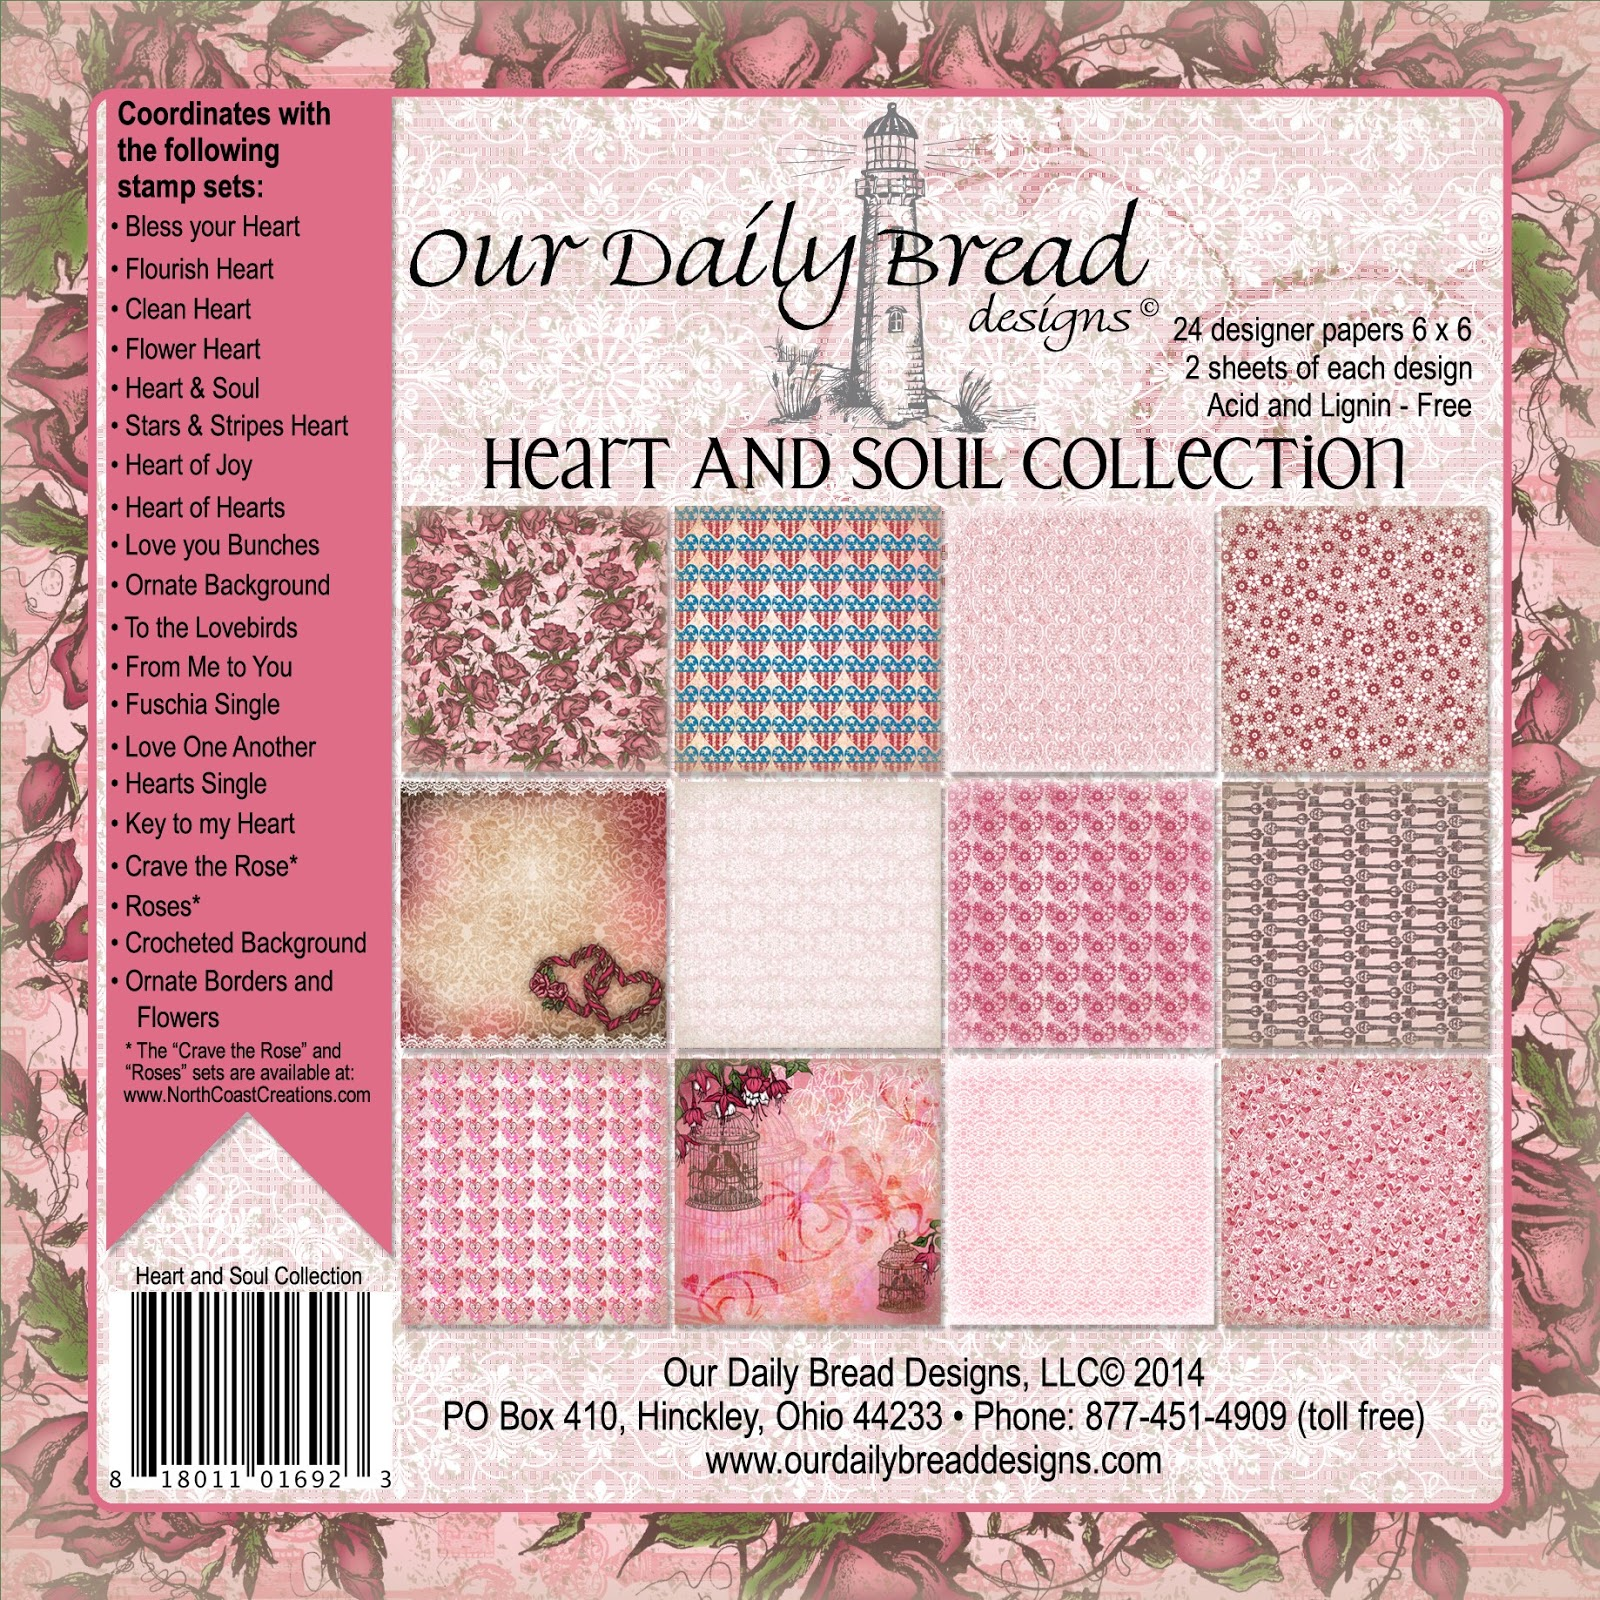 OUR DAILY BREAD DESIGNS HEART AND SOUL PAPER COLLECTION